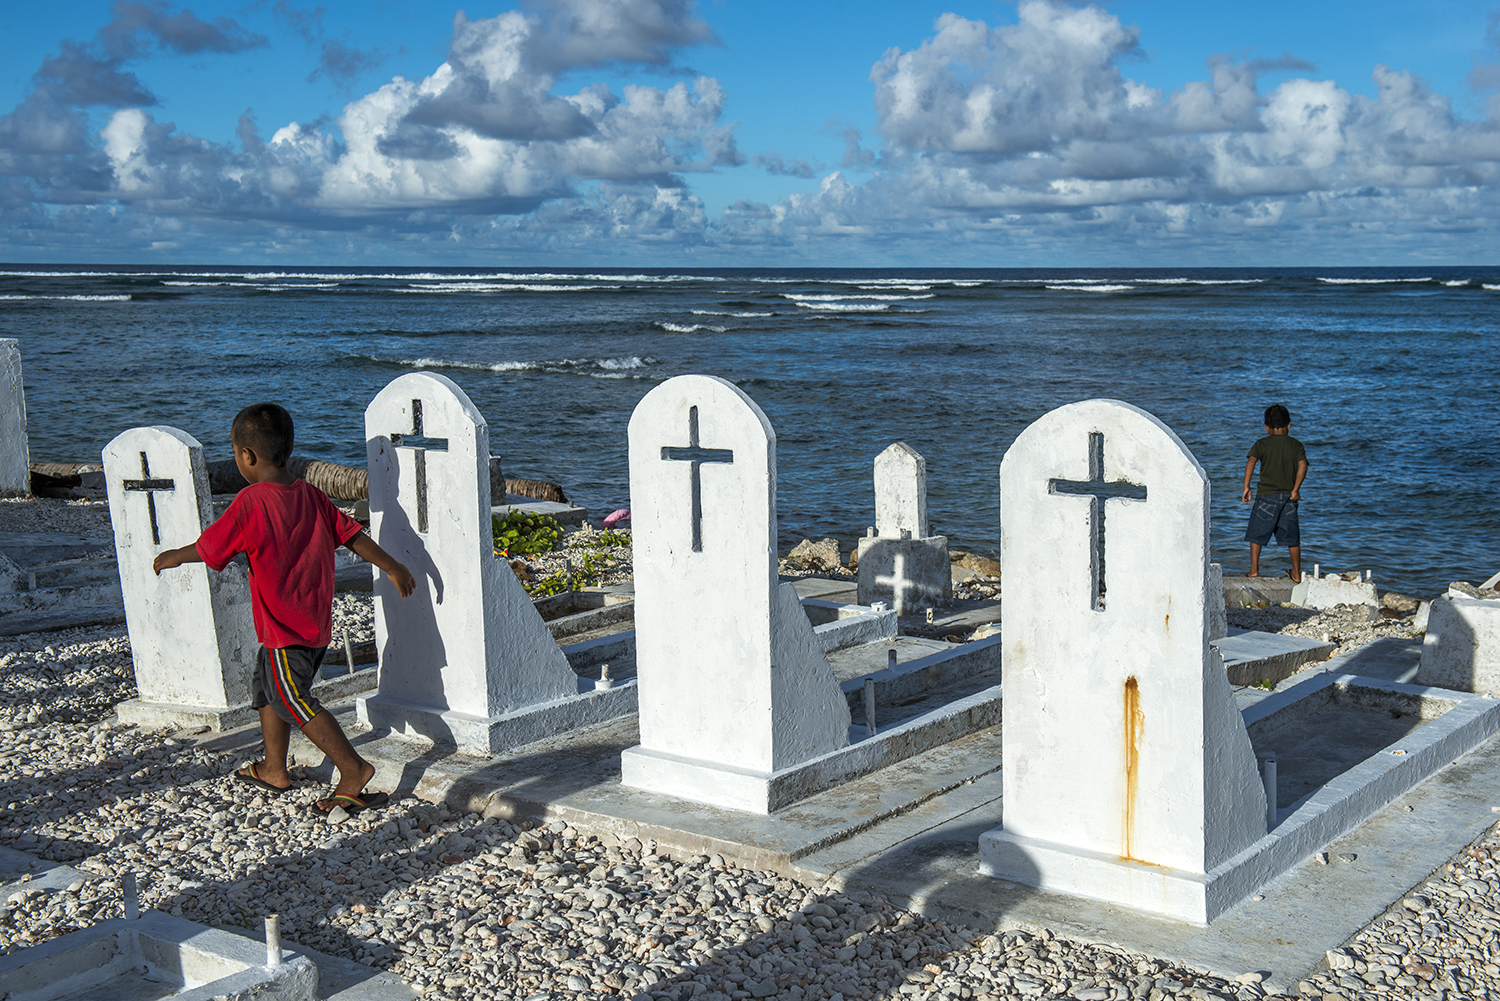 <p>Some graveyards built along the ocean are falling in the sea due to erosion and climate change.</p>